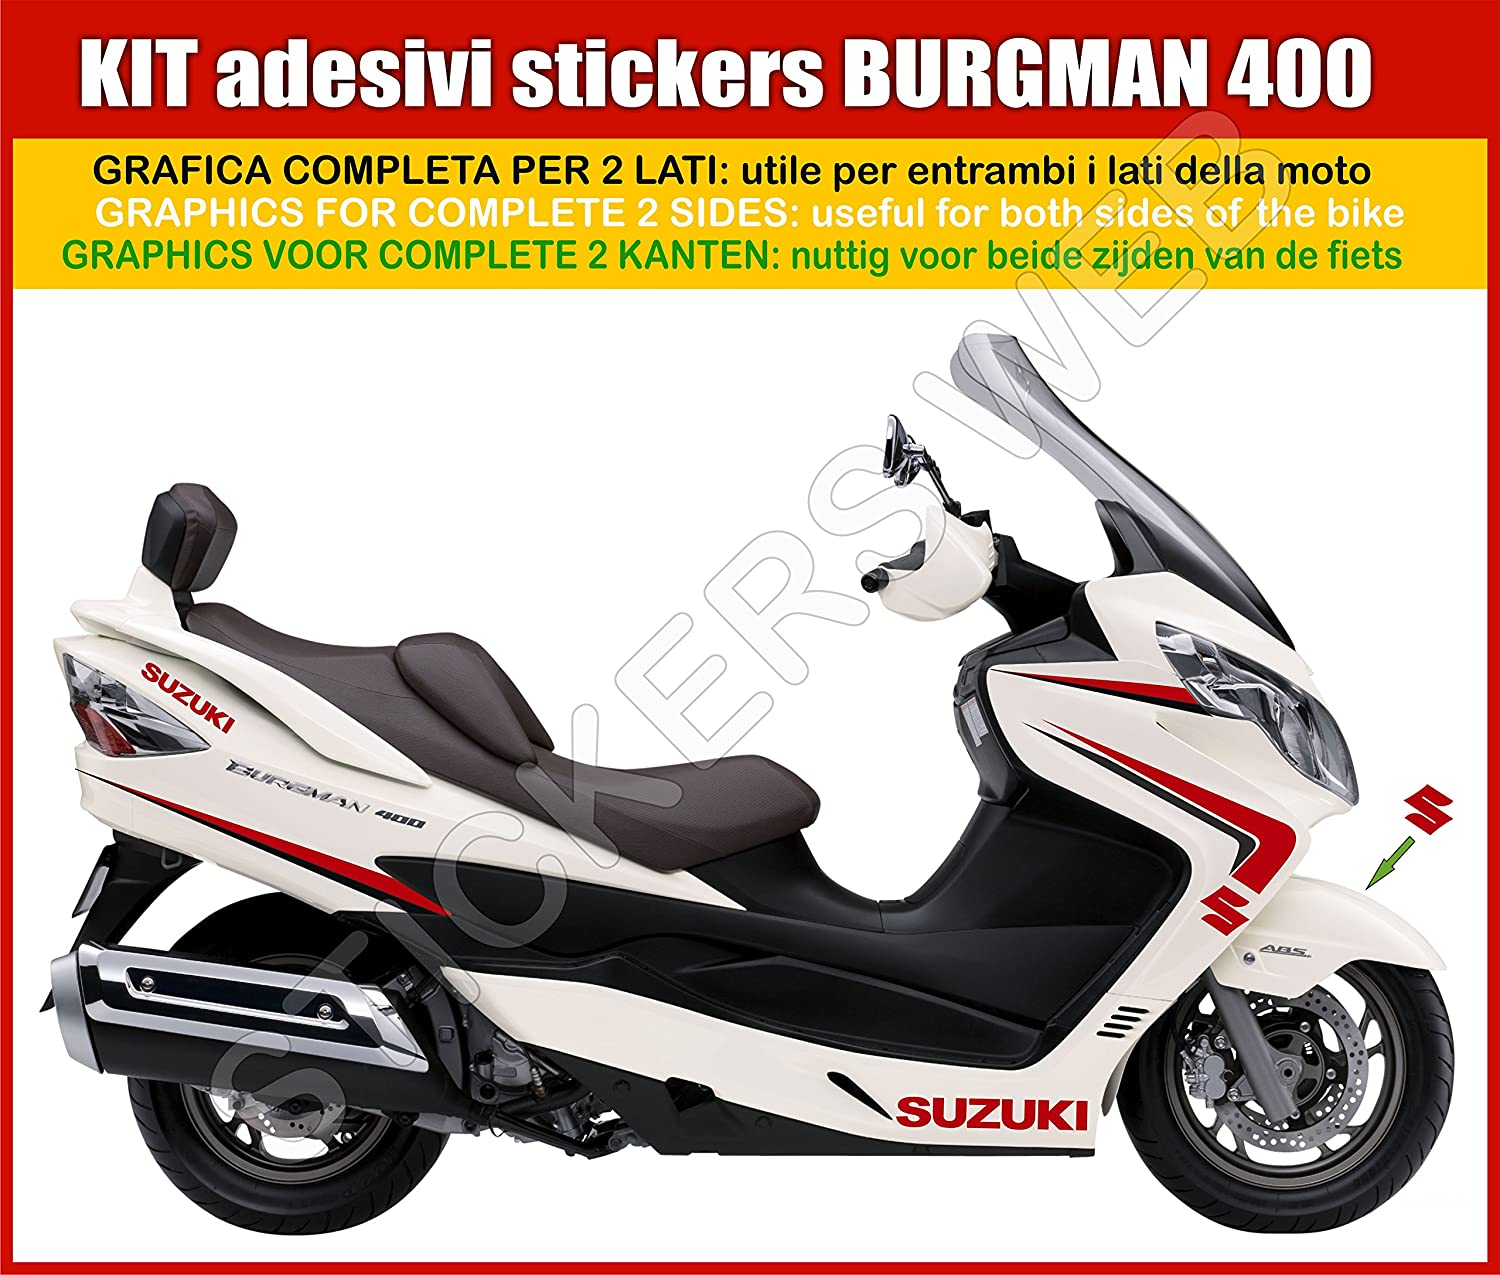 1 Suzuki Burgman Adhesive Stickers 400 -White Fairing- Graphic Full Kit --Code0034 w it is possible to personalise the colours